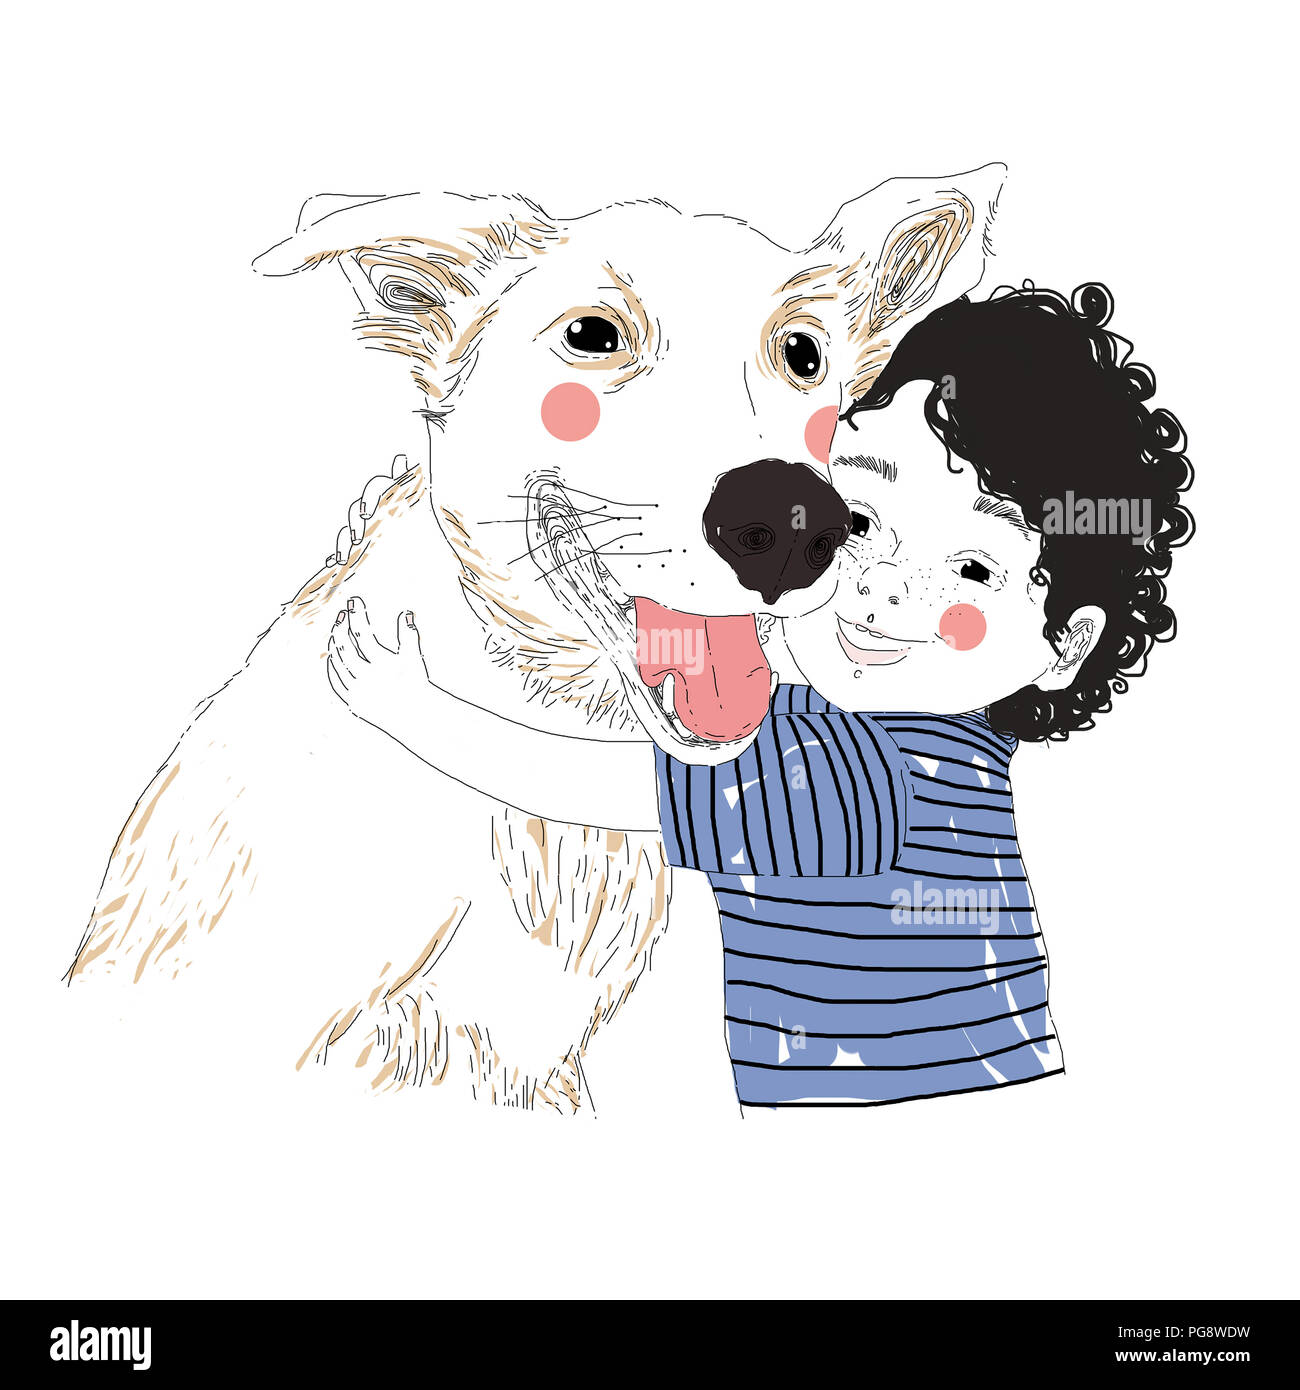 Illustration of a cute little boy hugging his friend big dog. True friendship concert. Carrying of pets concept. Can be used for t-shirt print, kids w - Stock Image